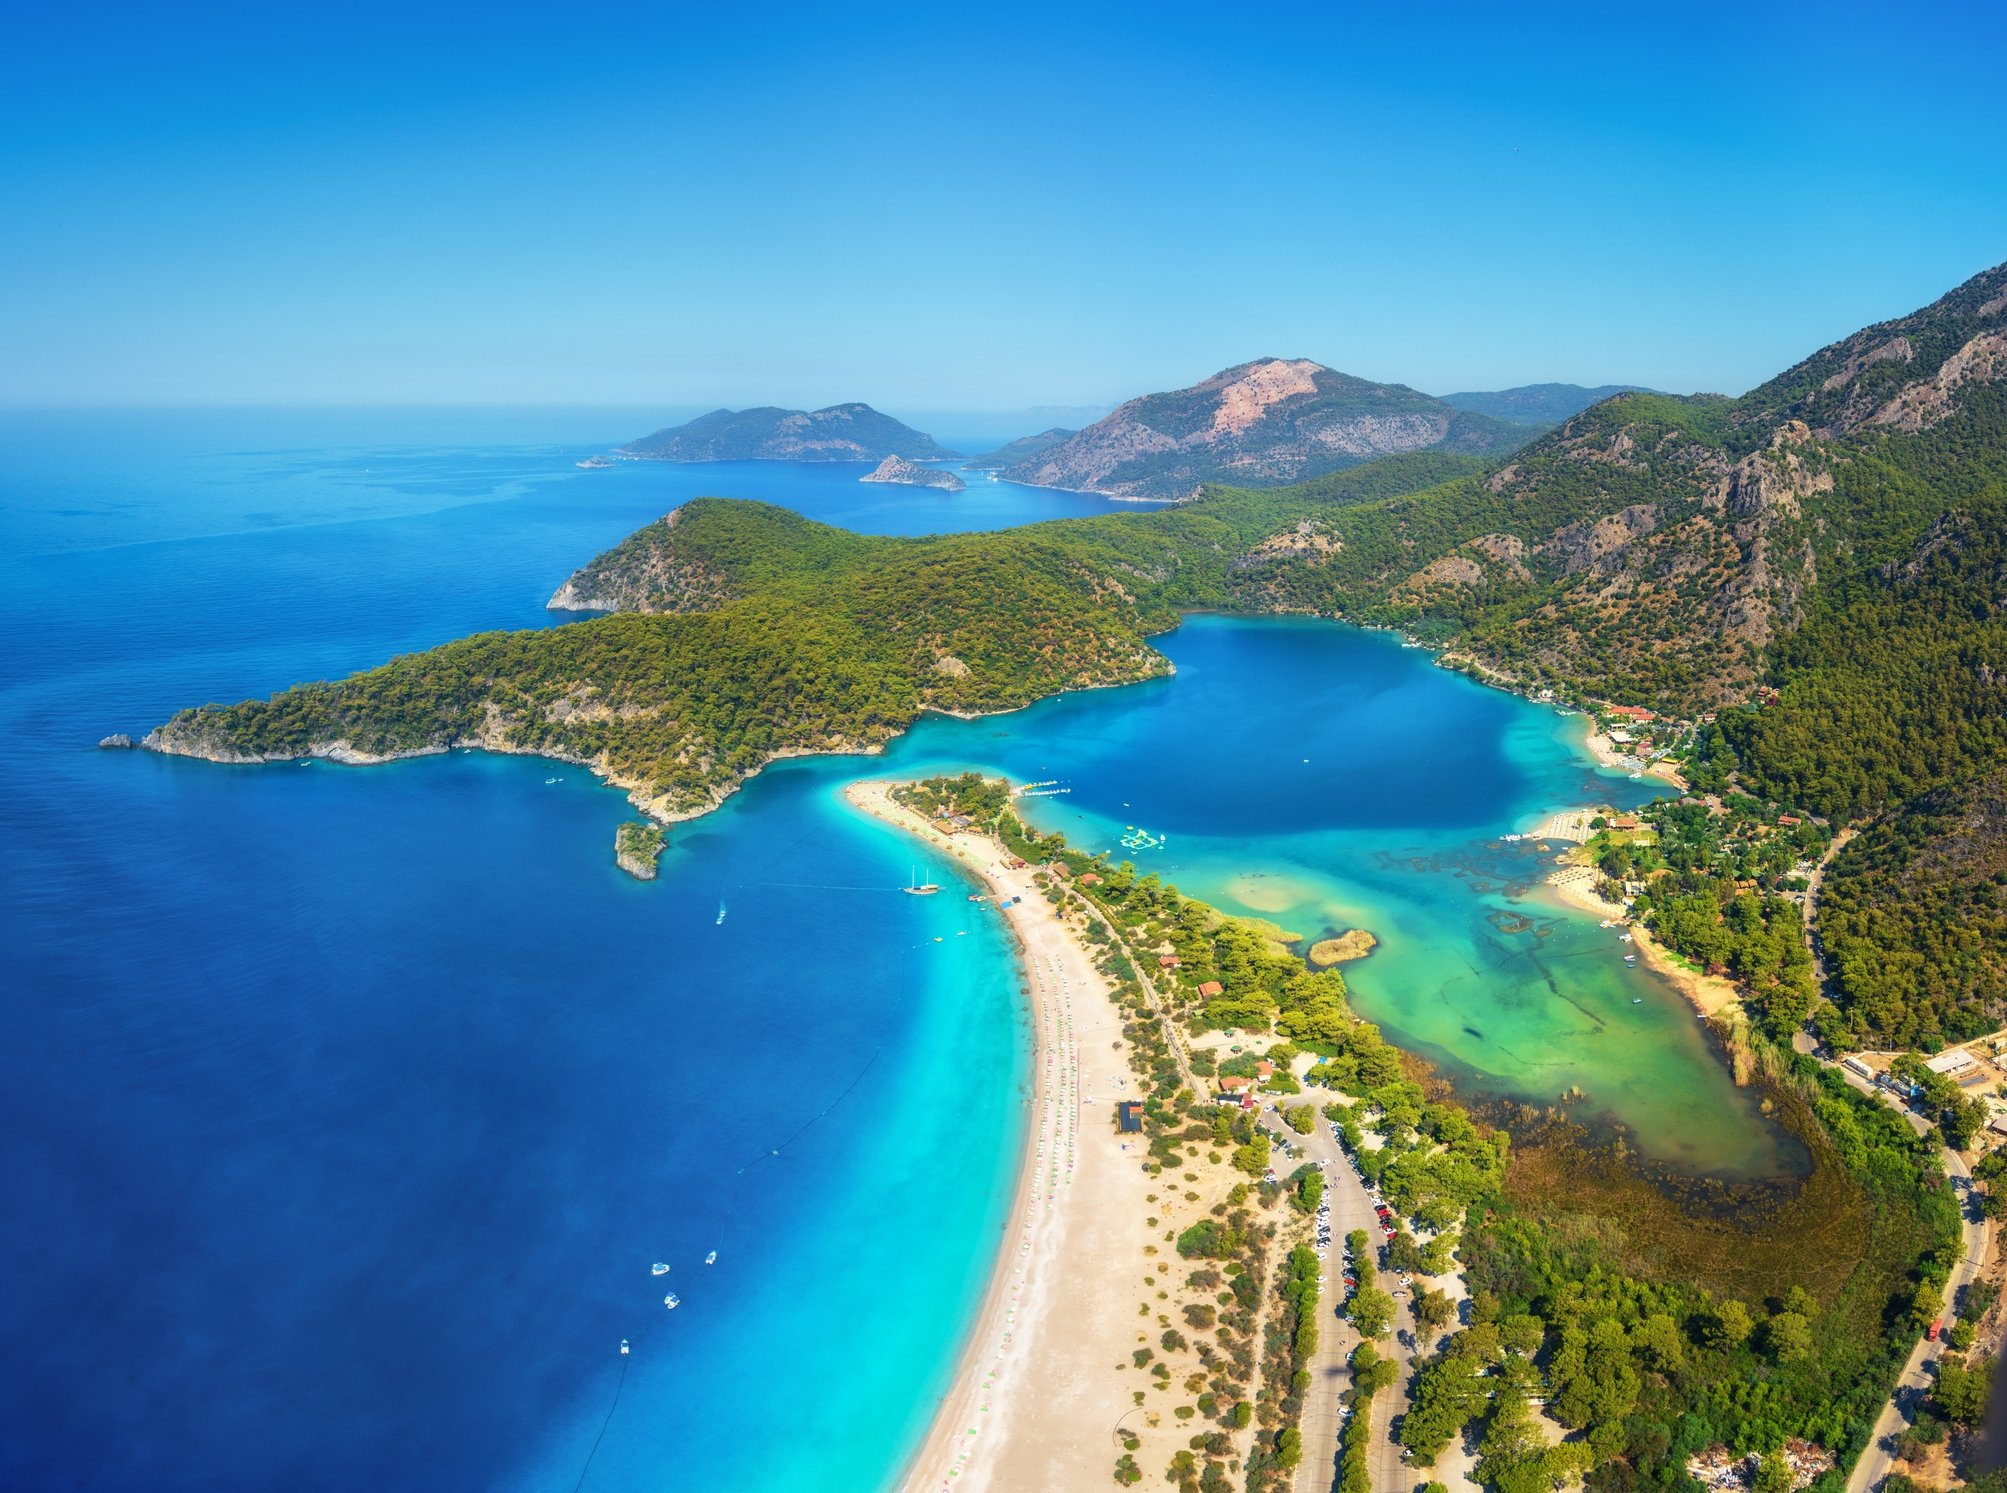 Ölüdeniz Beach is a great combination of majestic mountains, green forests, azure waters and sandy beached. (iStock Photo)